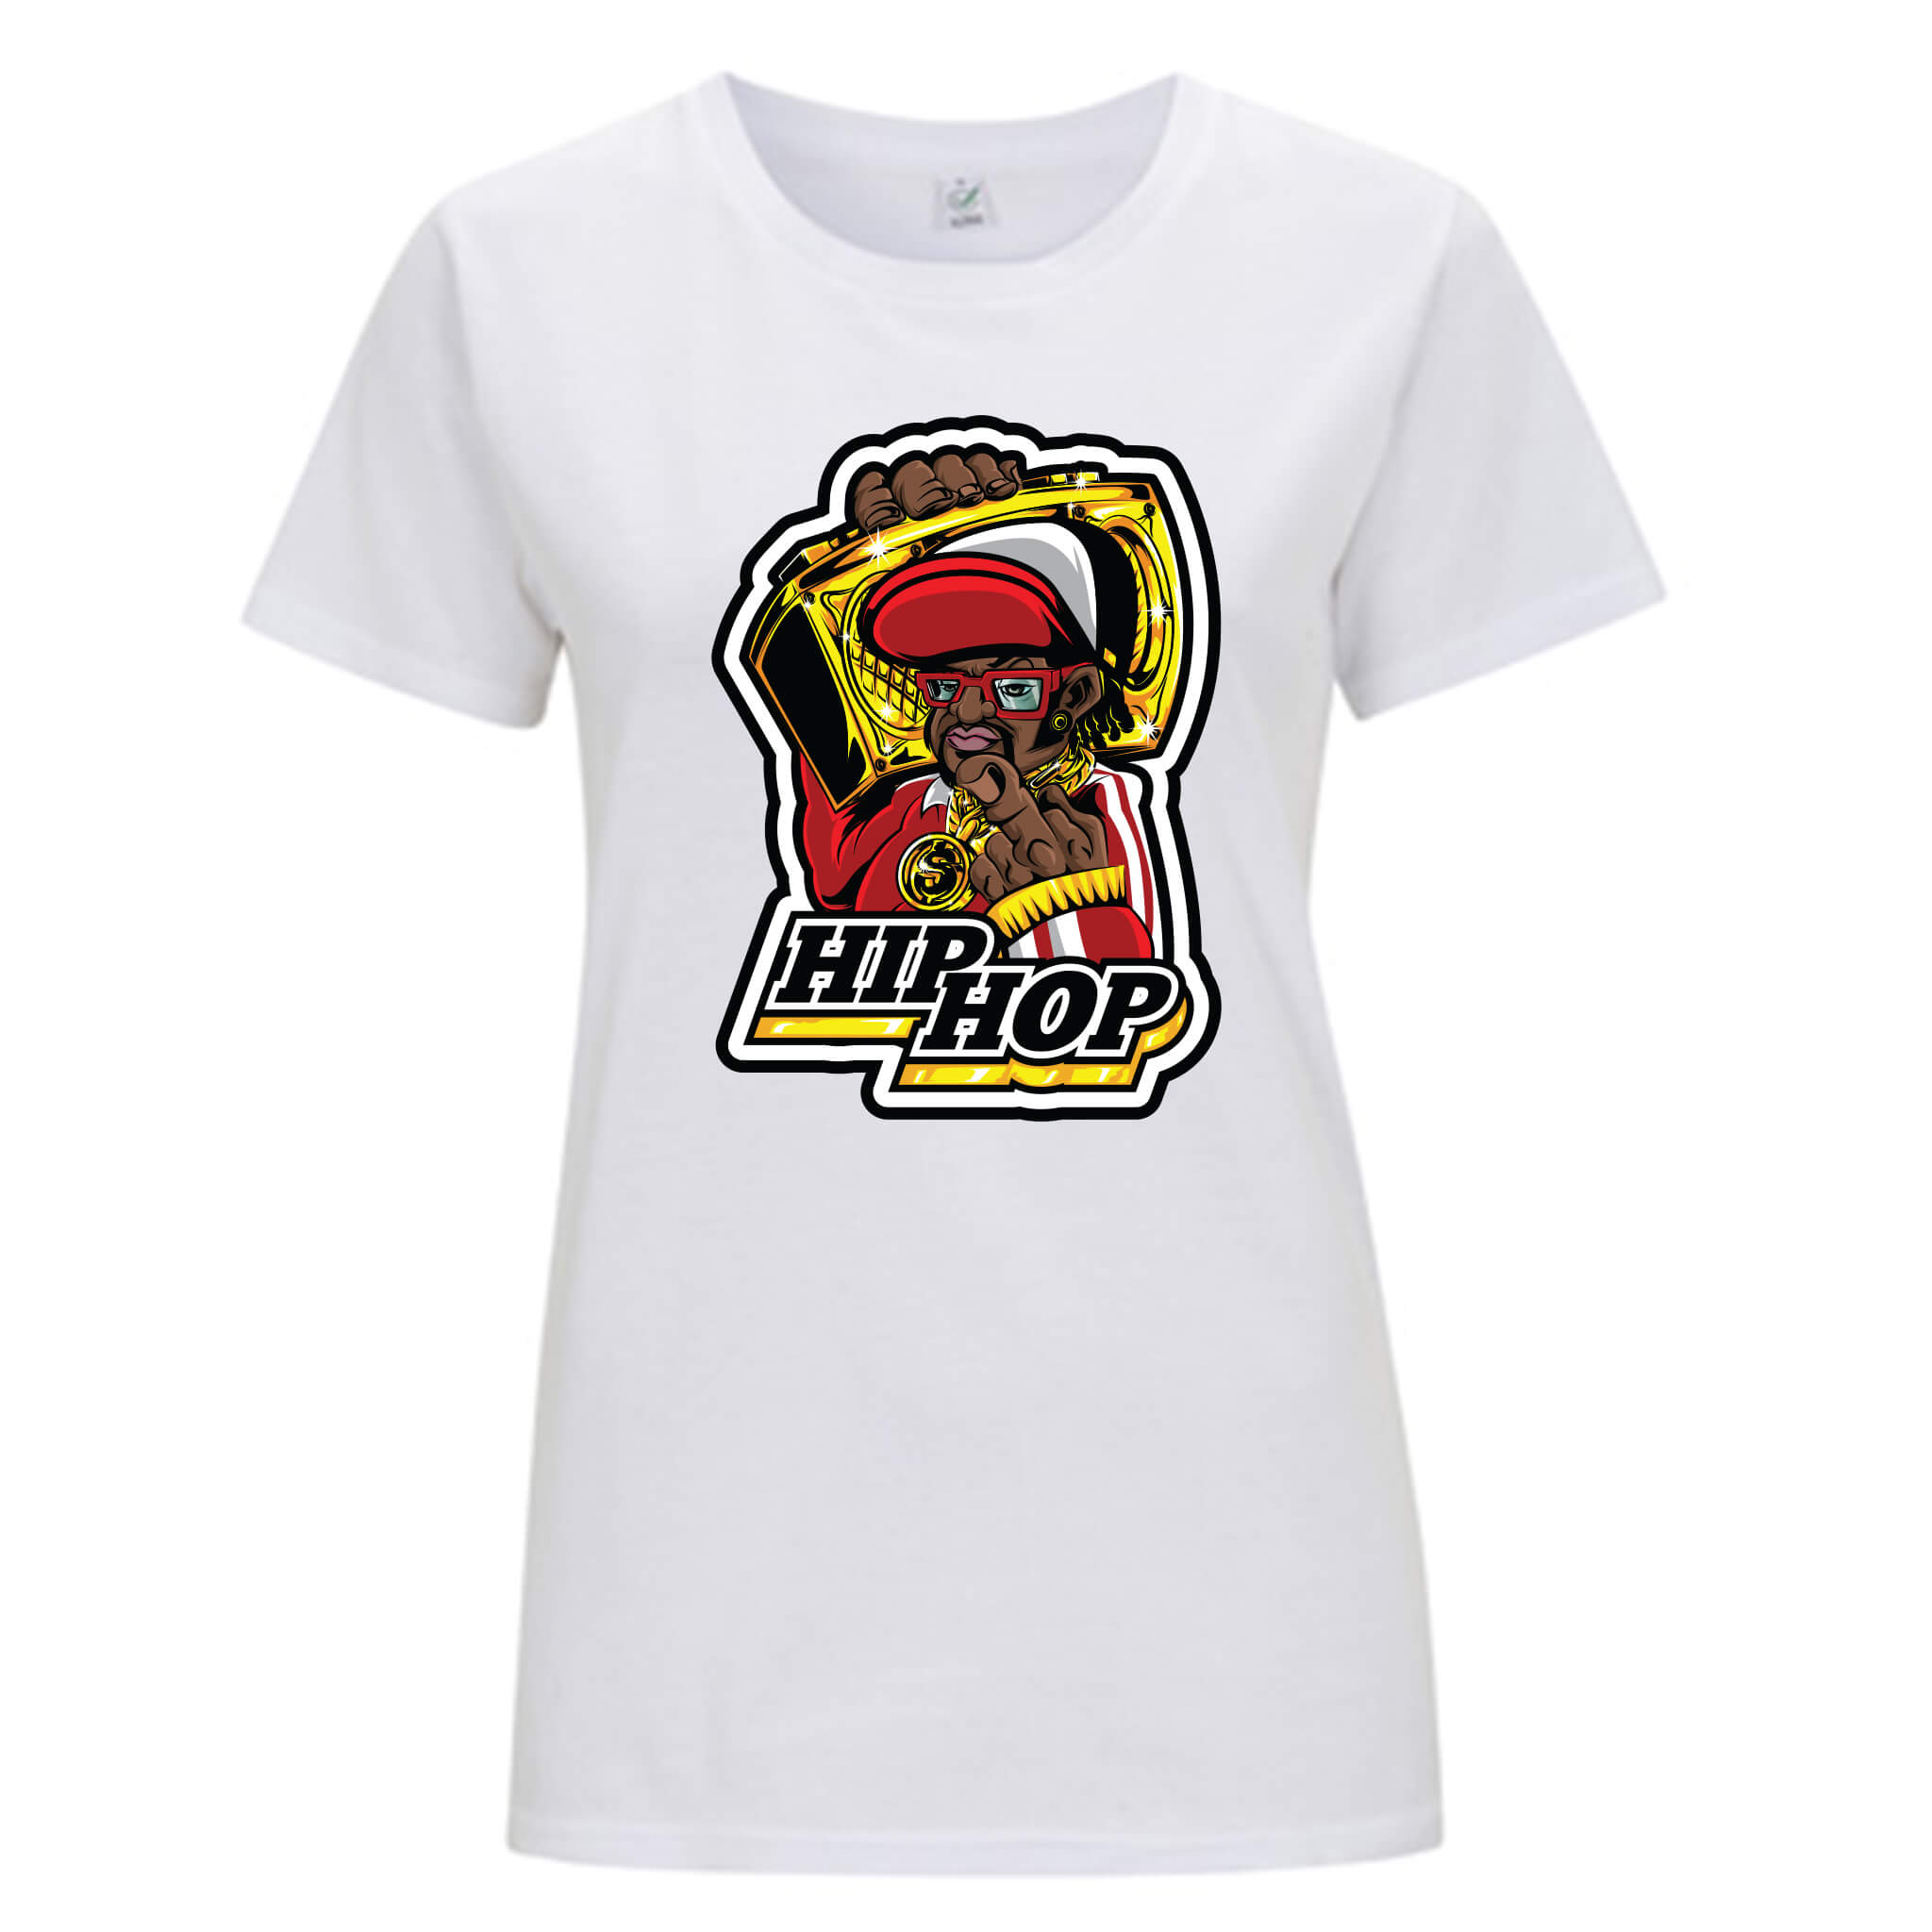 Musica Hip Hop - T-shirt Donna - T-Shirt by Fol The Brand